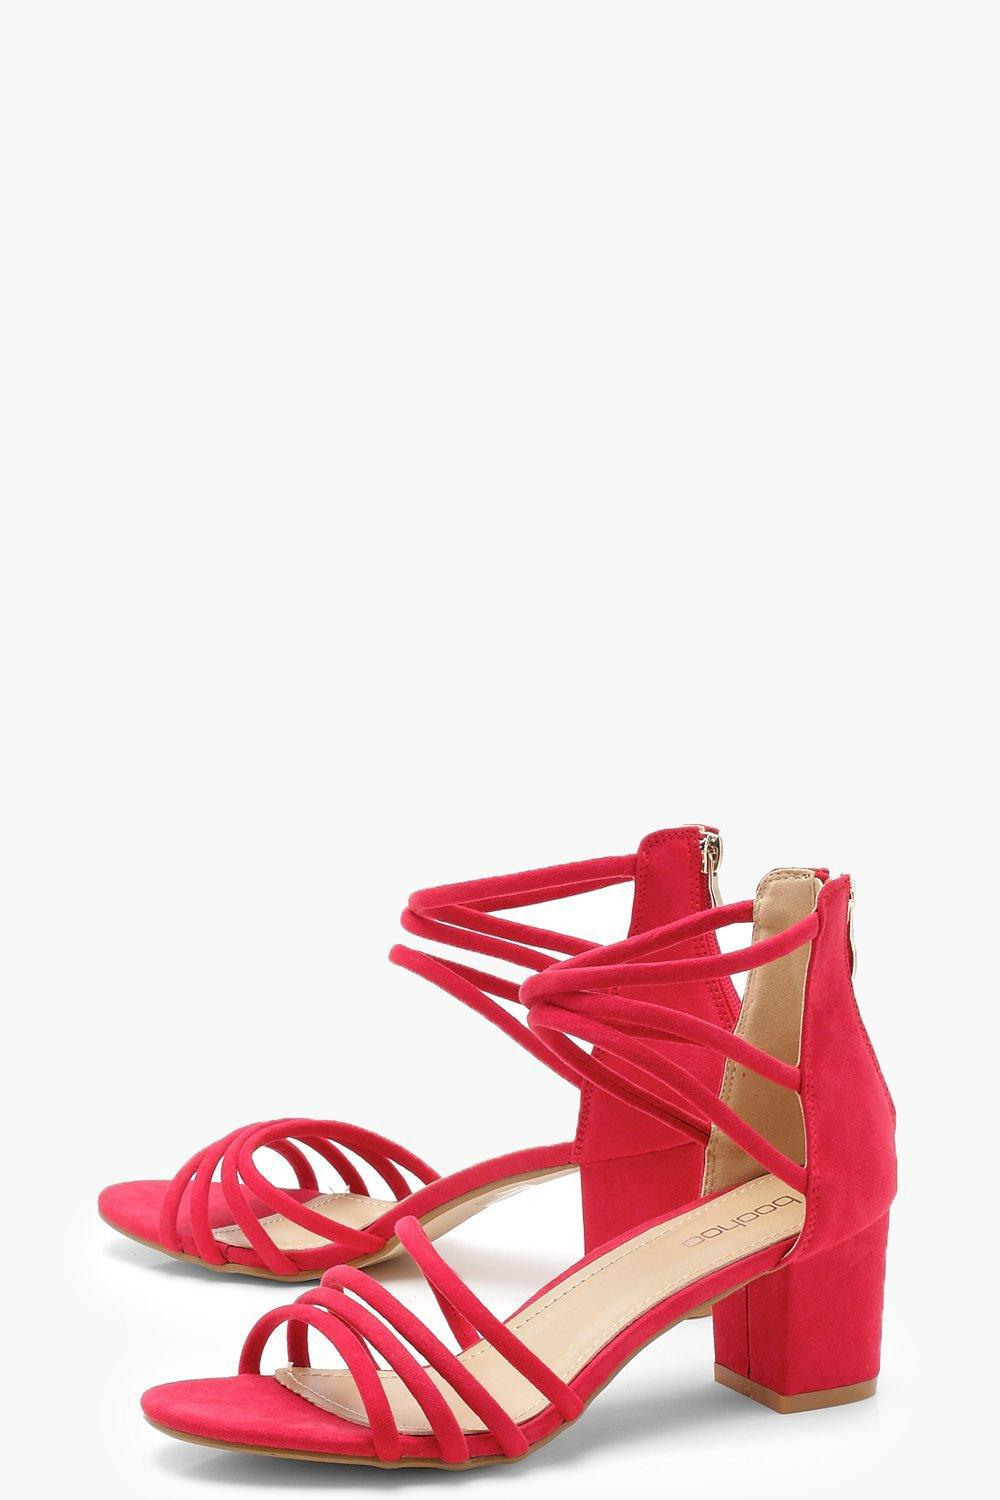 a860e9a956c Lyst - Boohoo Strappy Low Block Heels in Red